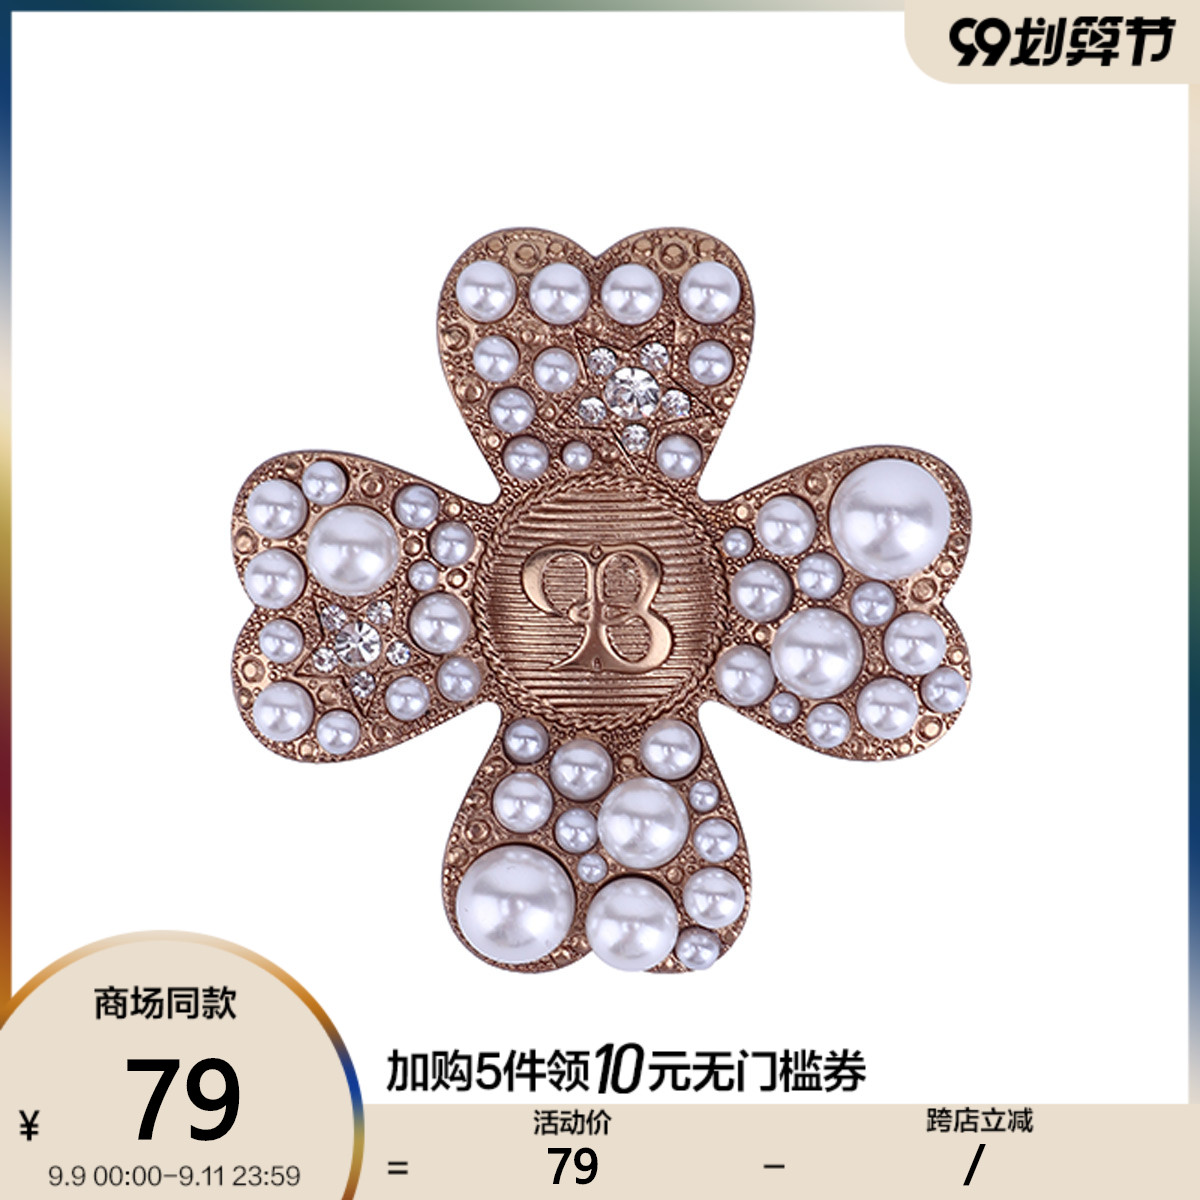 (Mall same model) Taiping Bird 2020 autumn winter new pearl embellished old gold brooch A9YHA4A02